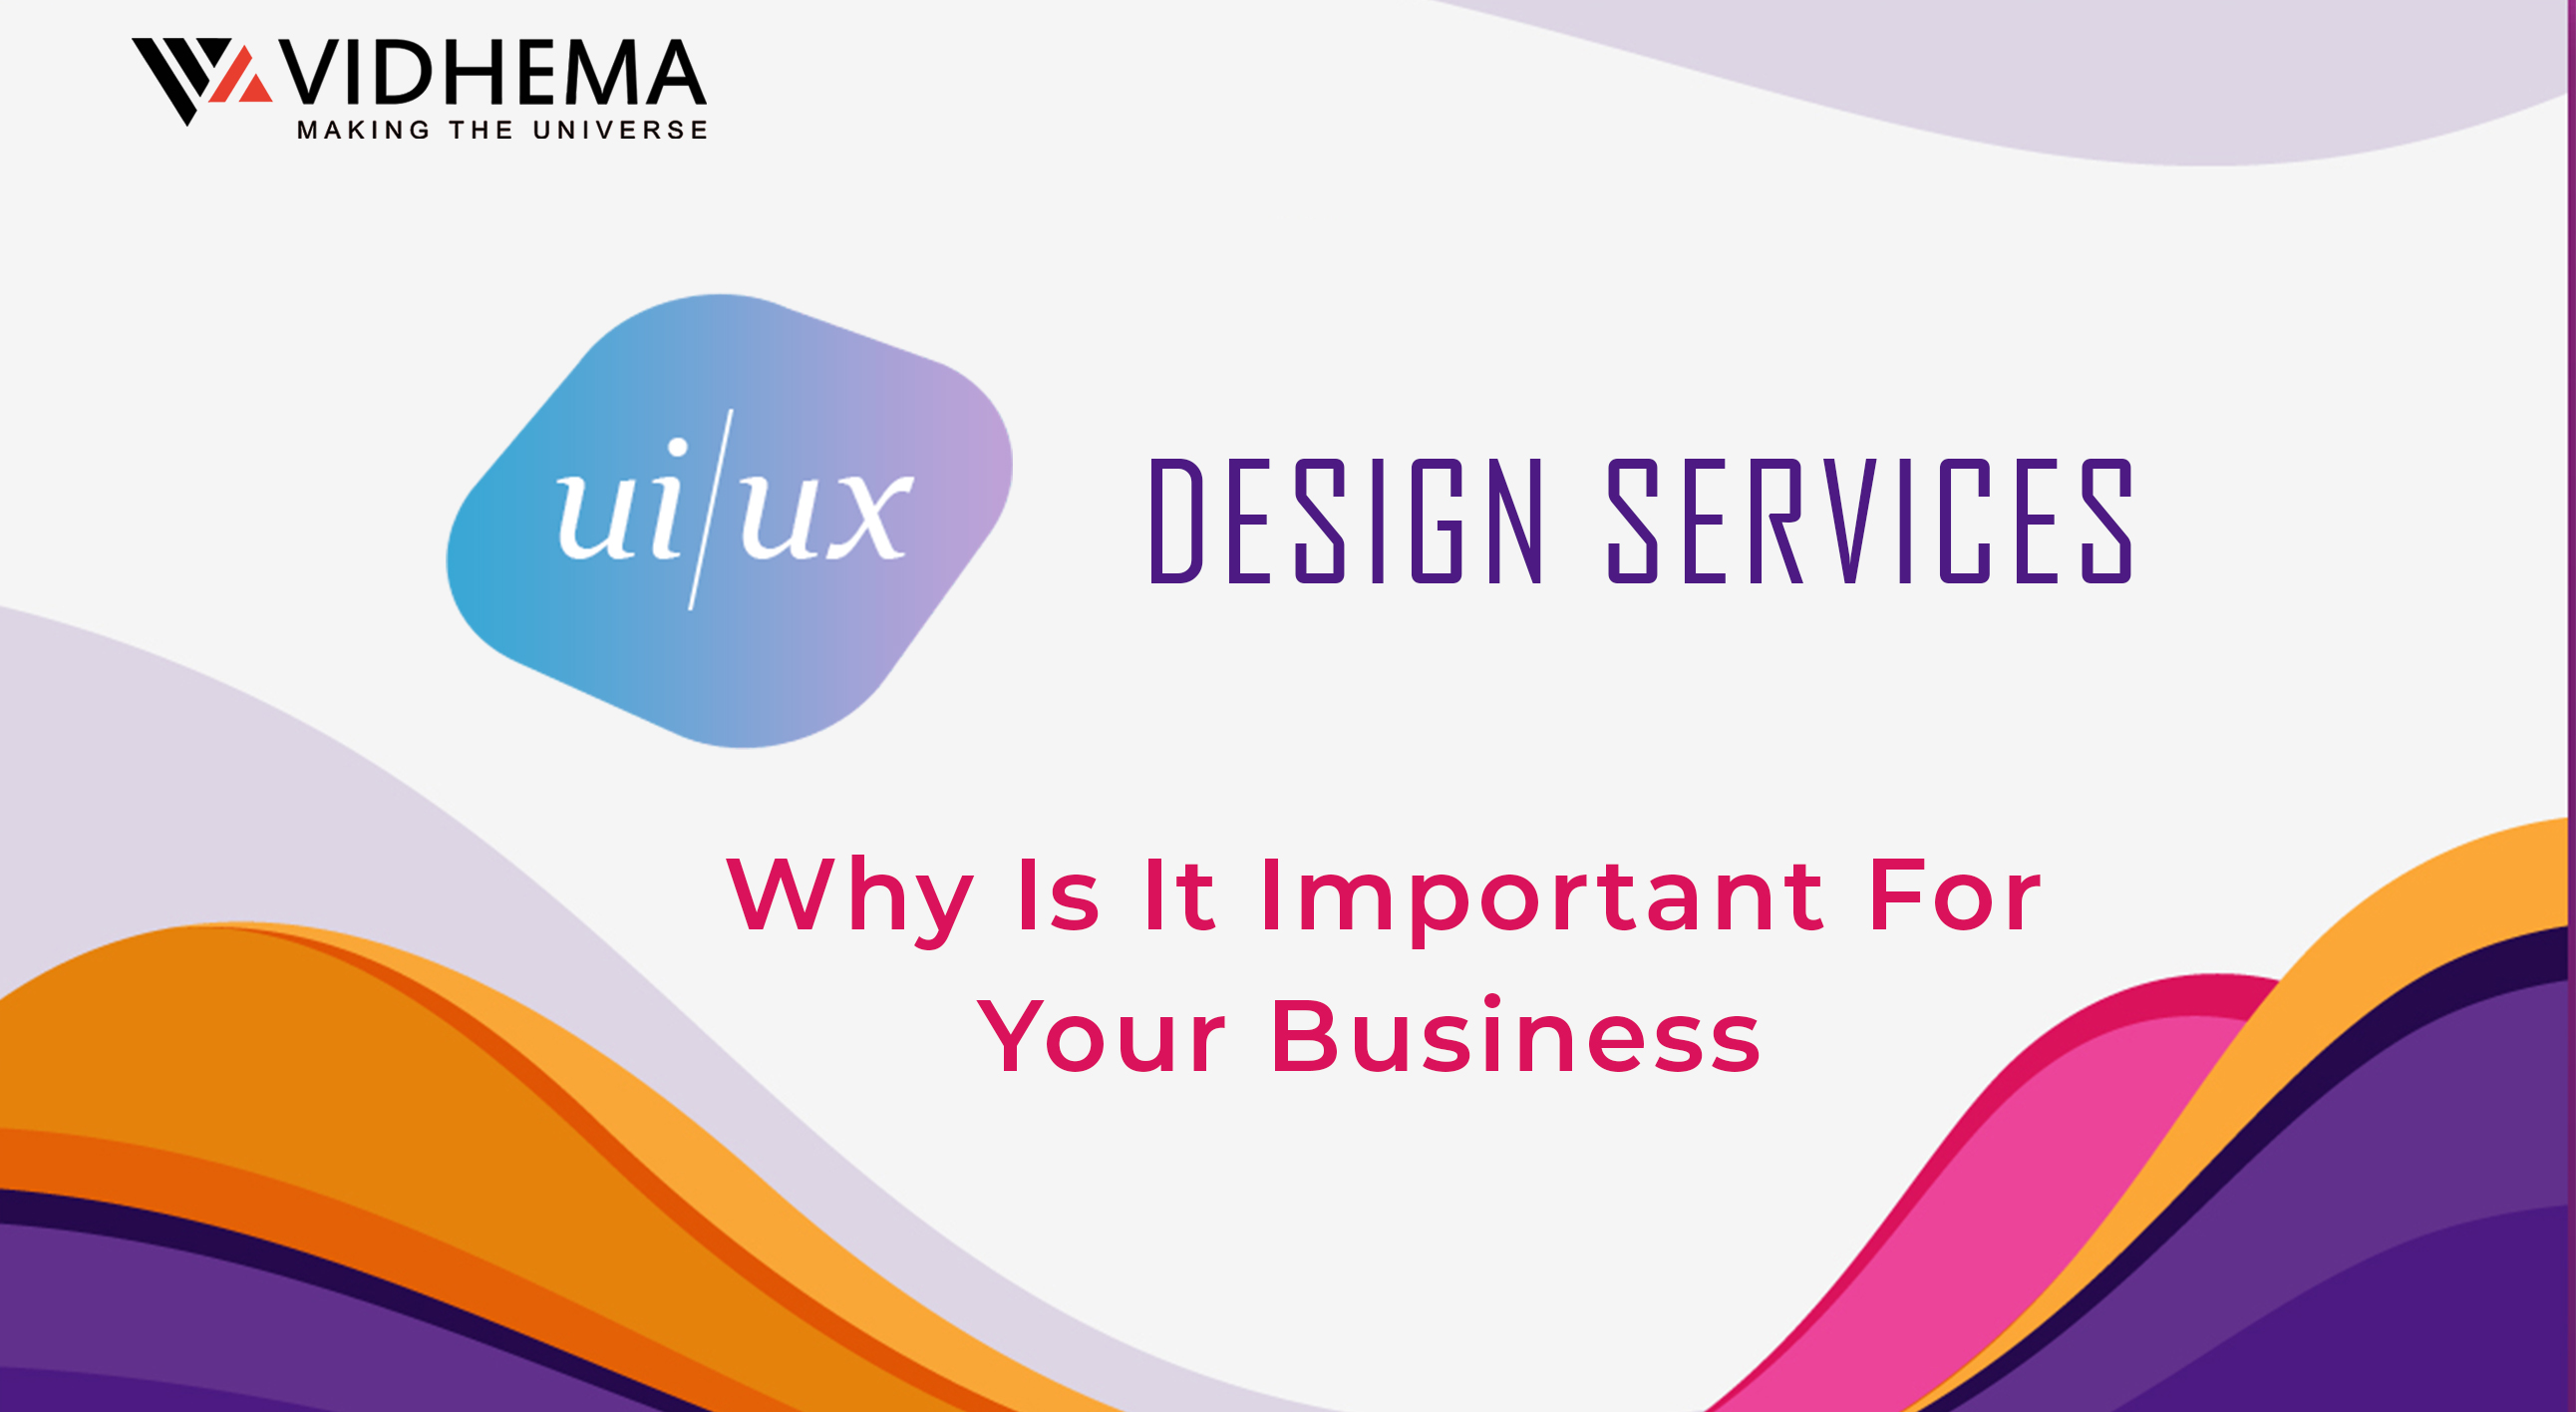 UI/UX Design Services: Why Is It Important For Your Busines?